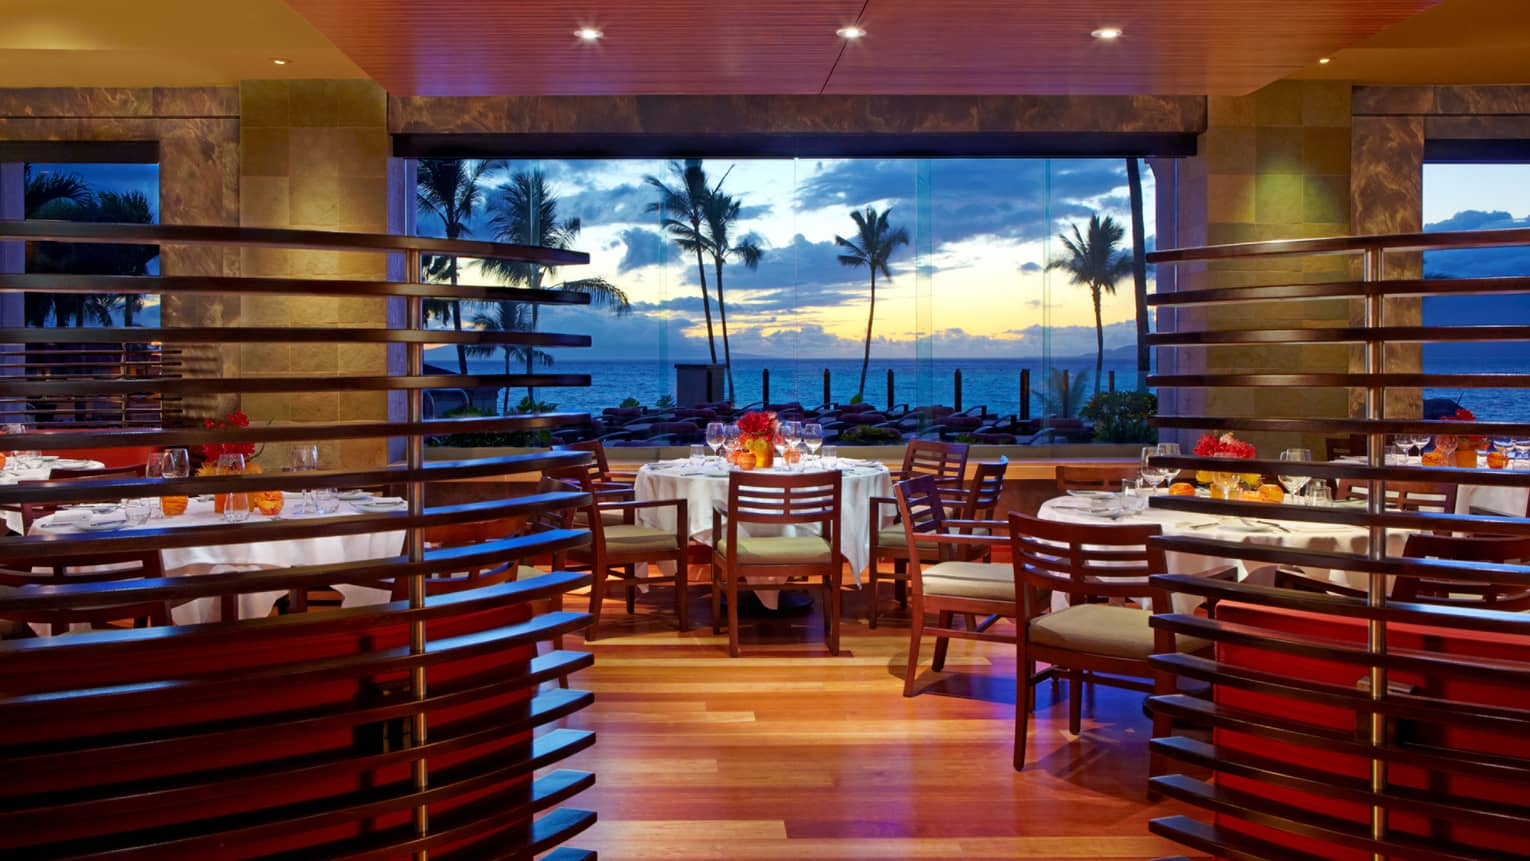 Sensational Wailea Restaurants Fine Dining Hawaii Four Seasons Interior Design Ideas Tzicisoteloinfo